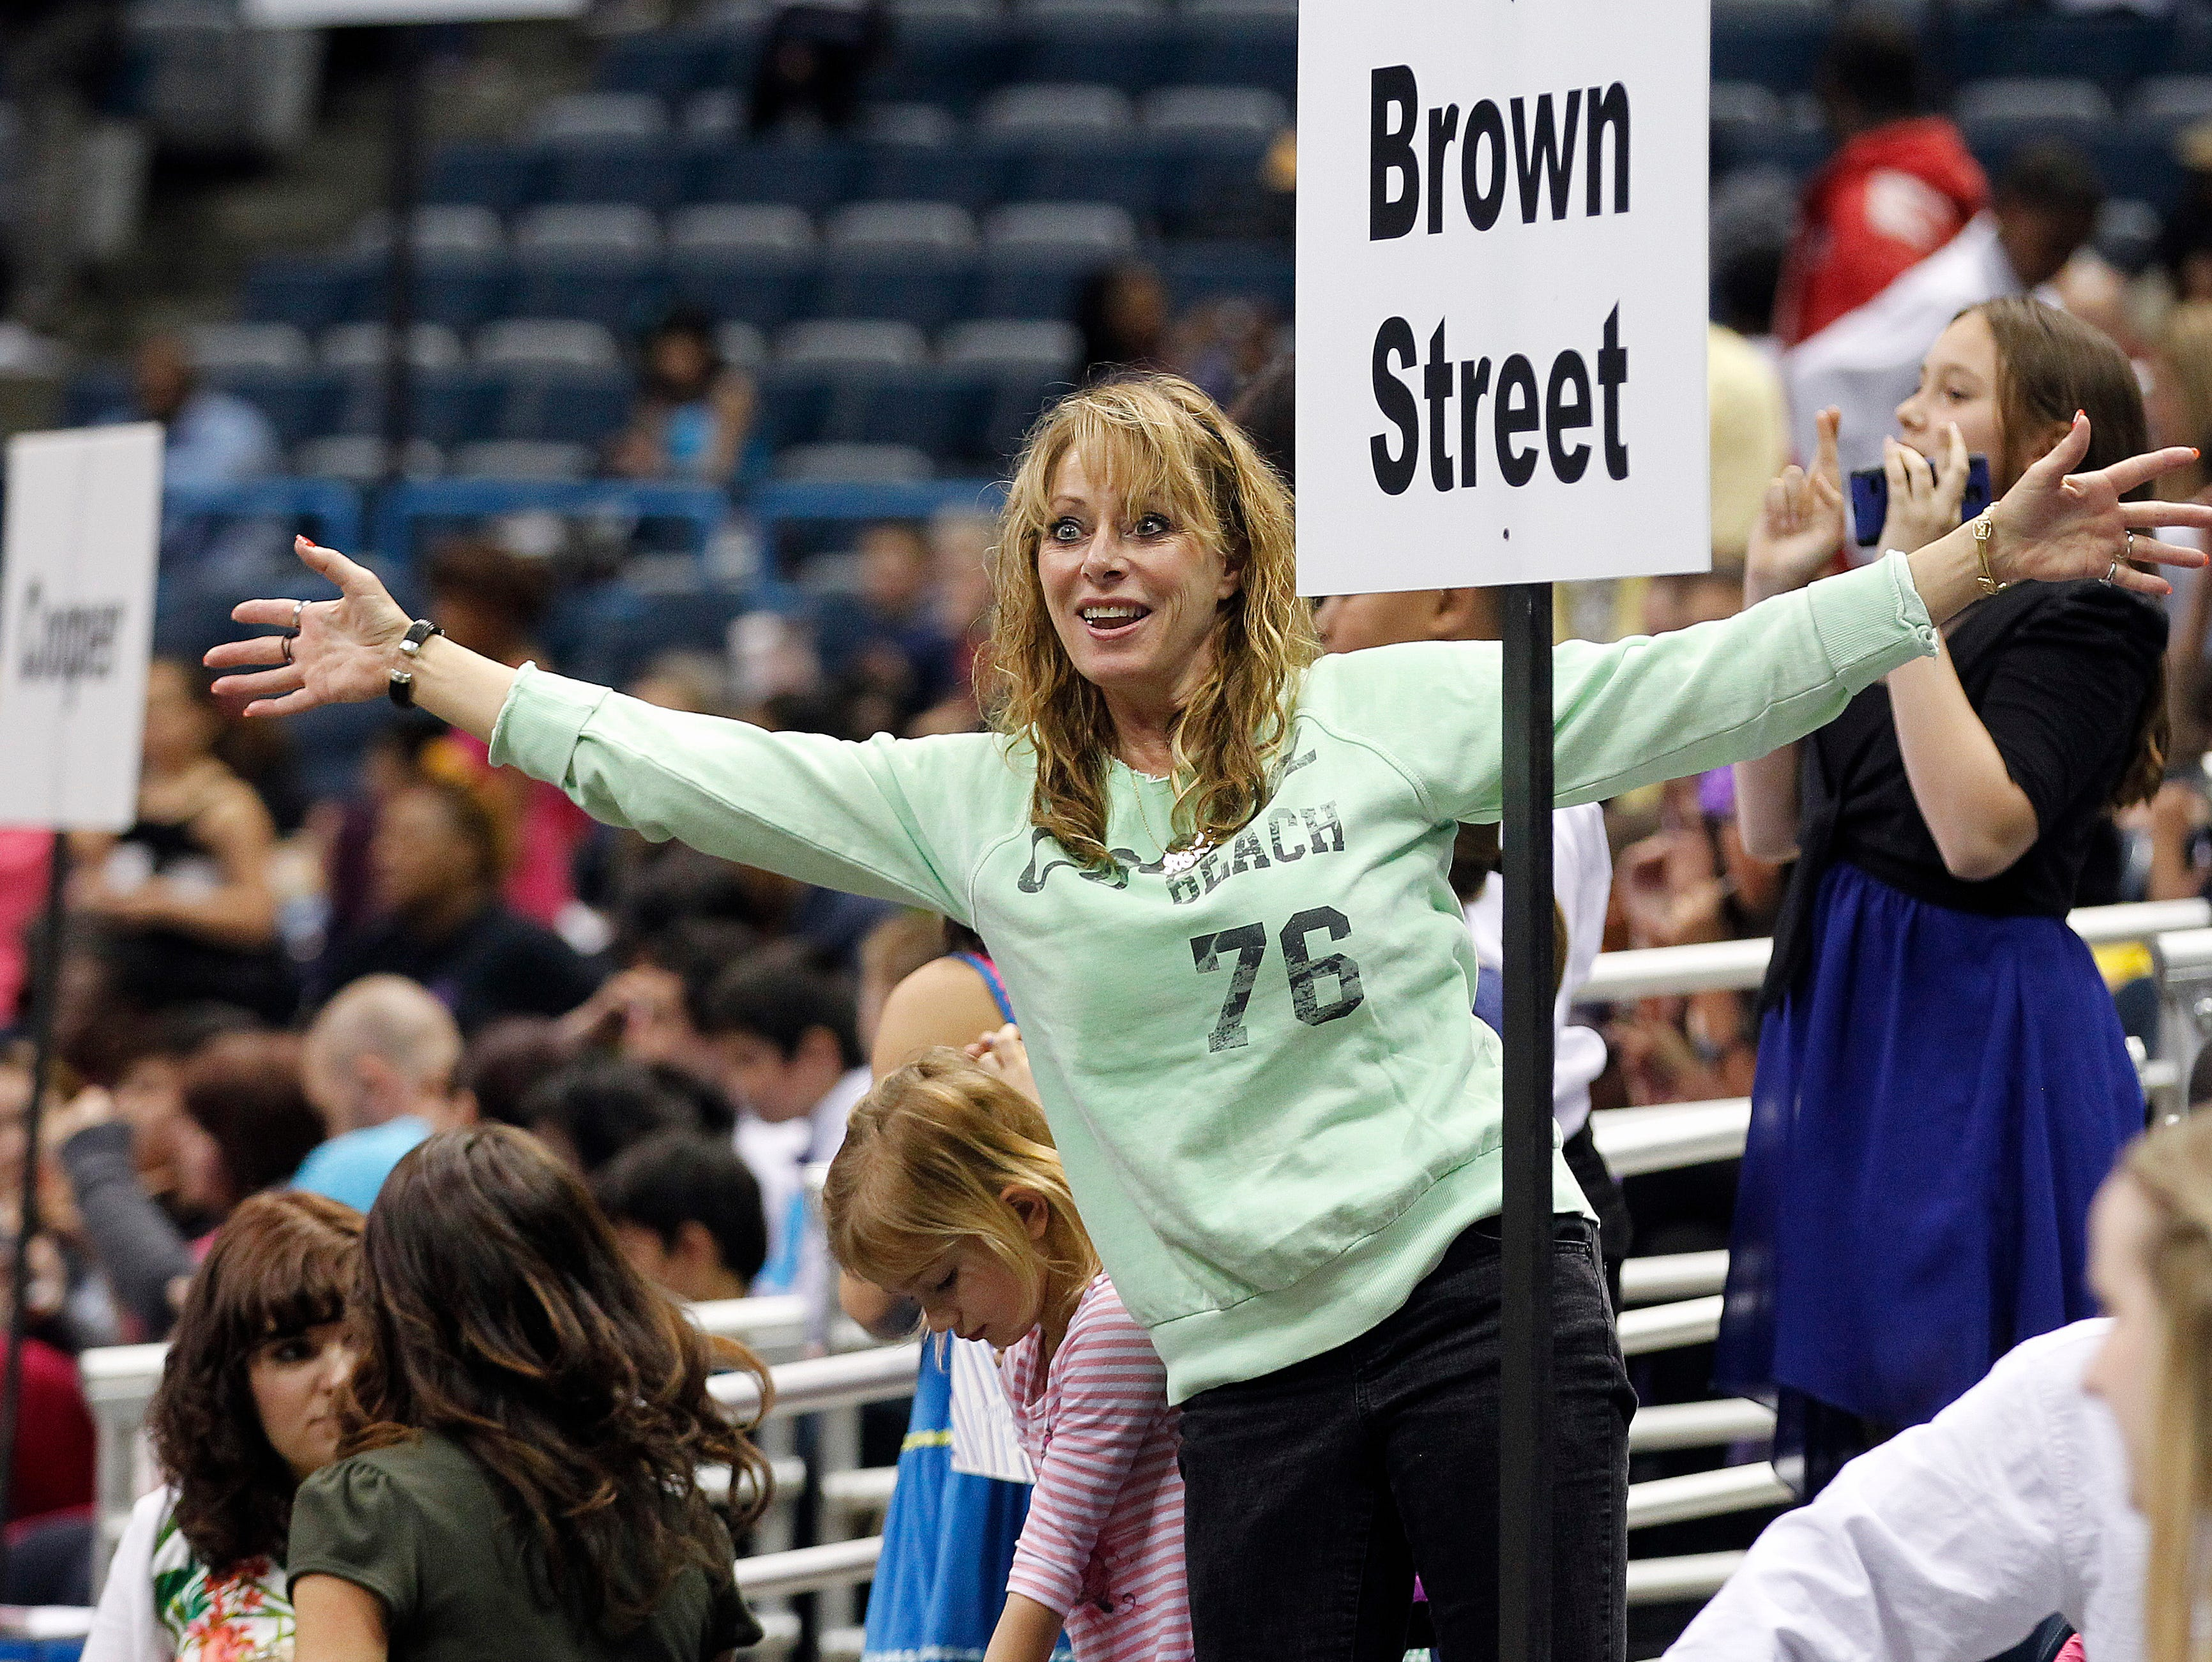 2014: Diane Michaels, of Arizona, roots for students from Trowbridge Street School dance during the annual Mad Hot Ballroom and Tap competition at the BMO Harris Bradley Center.